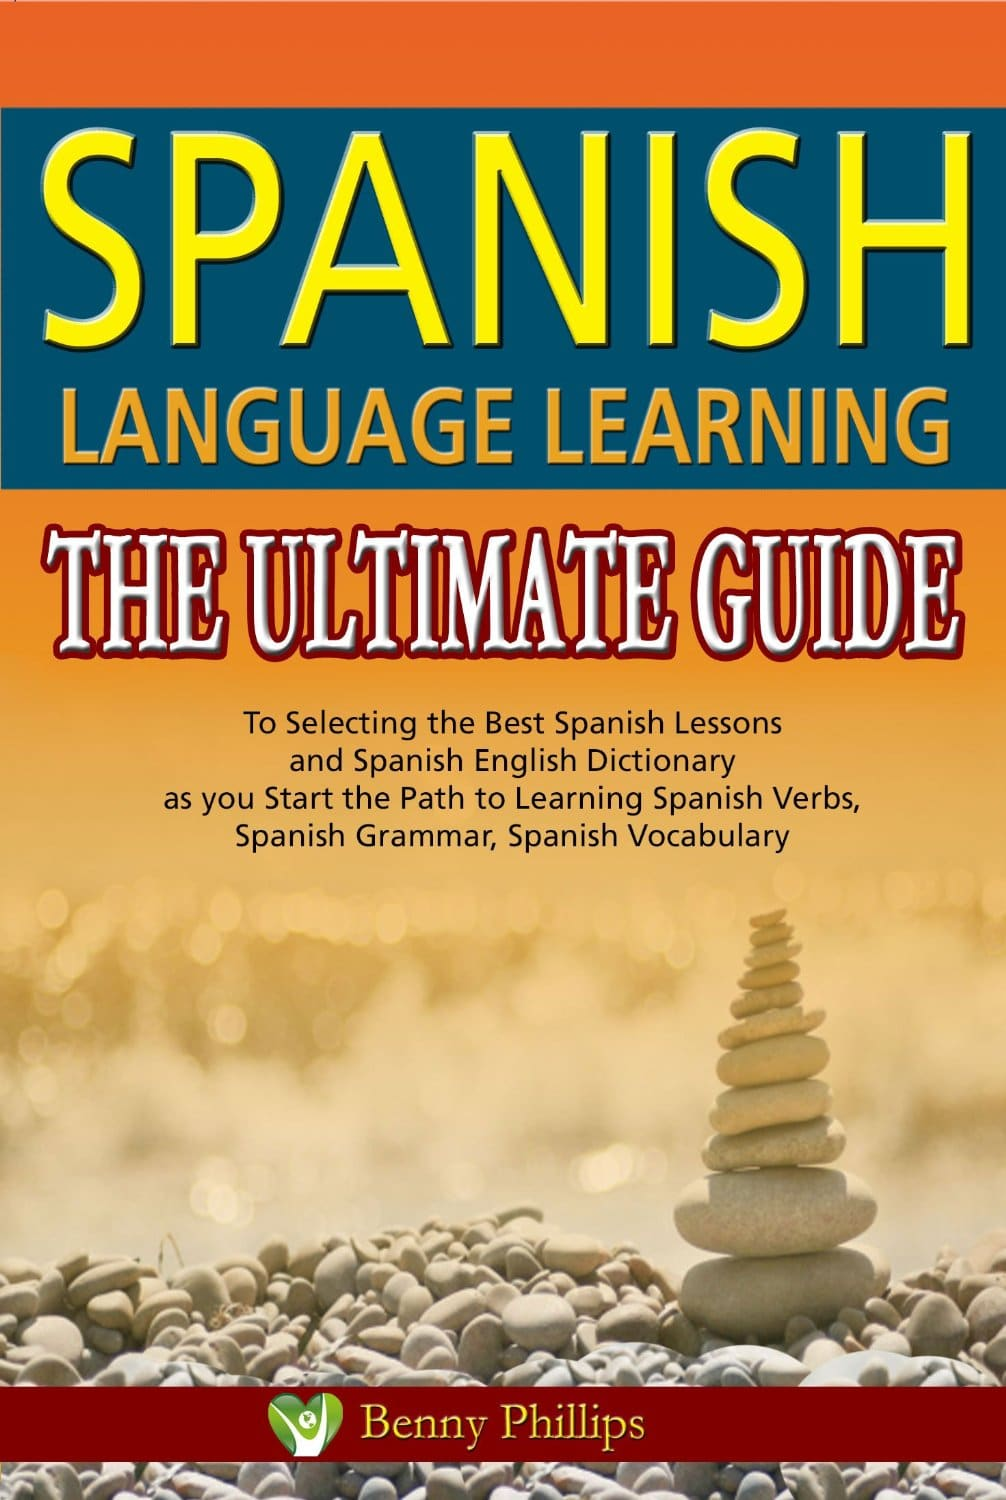 Measuring Worksheets For Kindergarten Excel  Sensational Spanish Teaching Books Youve Gotta Have  Fluentu  Worksheet On Adding And Subtracting Fractions Excel with Sibling Rivalry Worksheets Word Spanish Teaching Books Cell Membrane Worksheet Answers Word